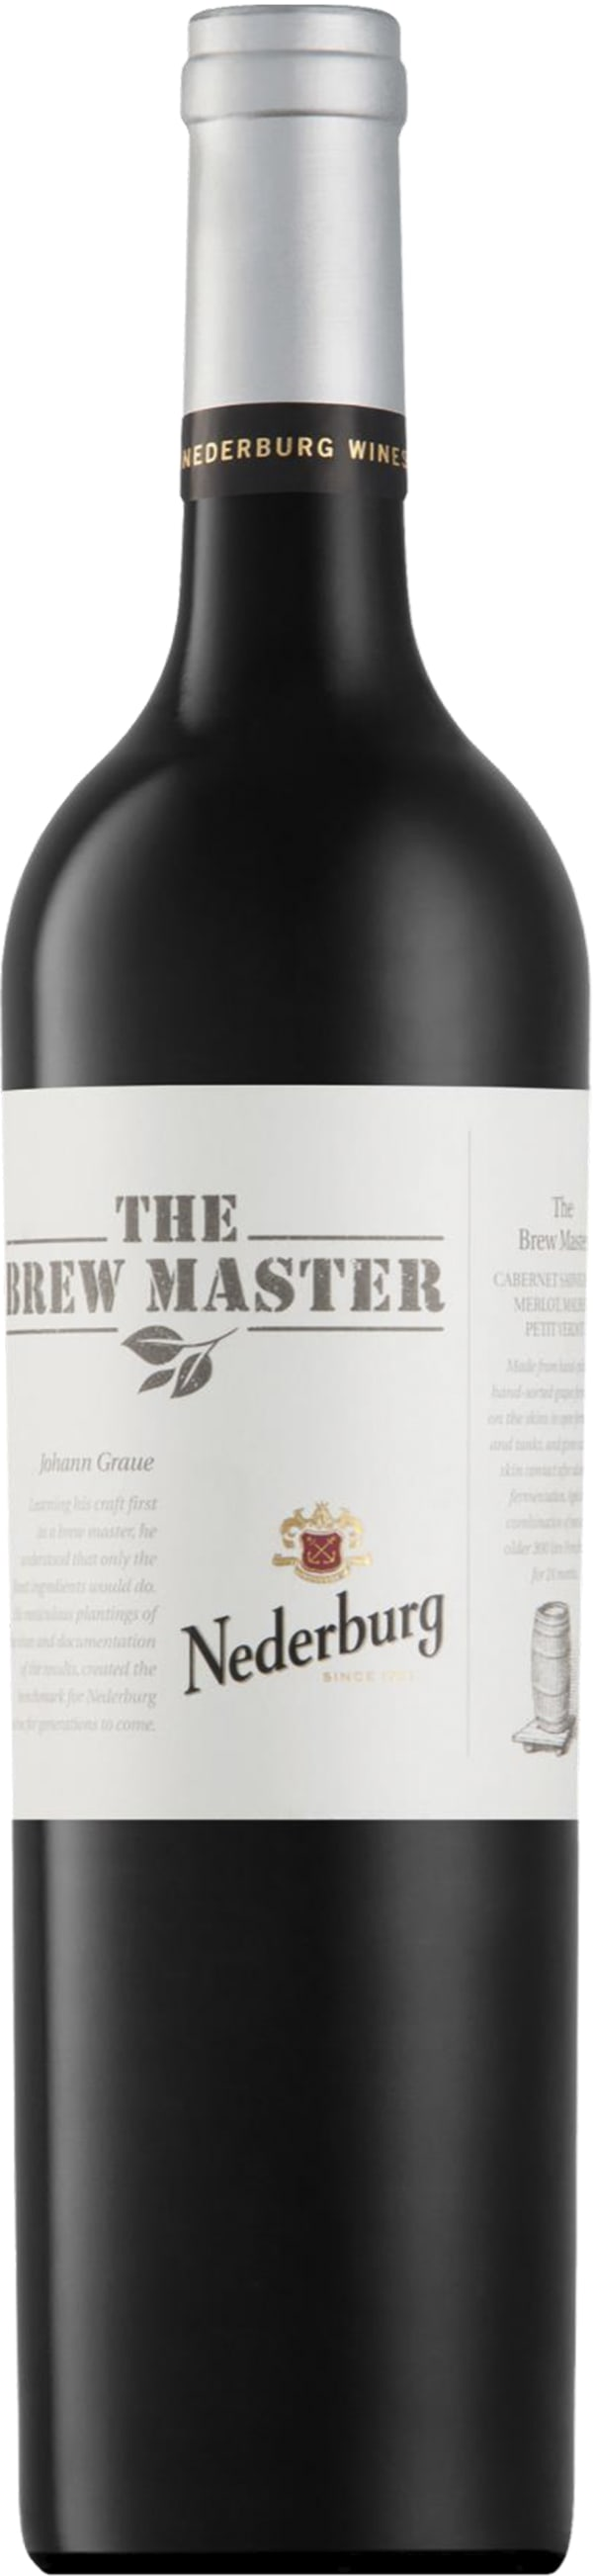 Nederburg The Brew Master 2010